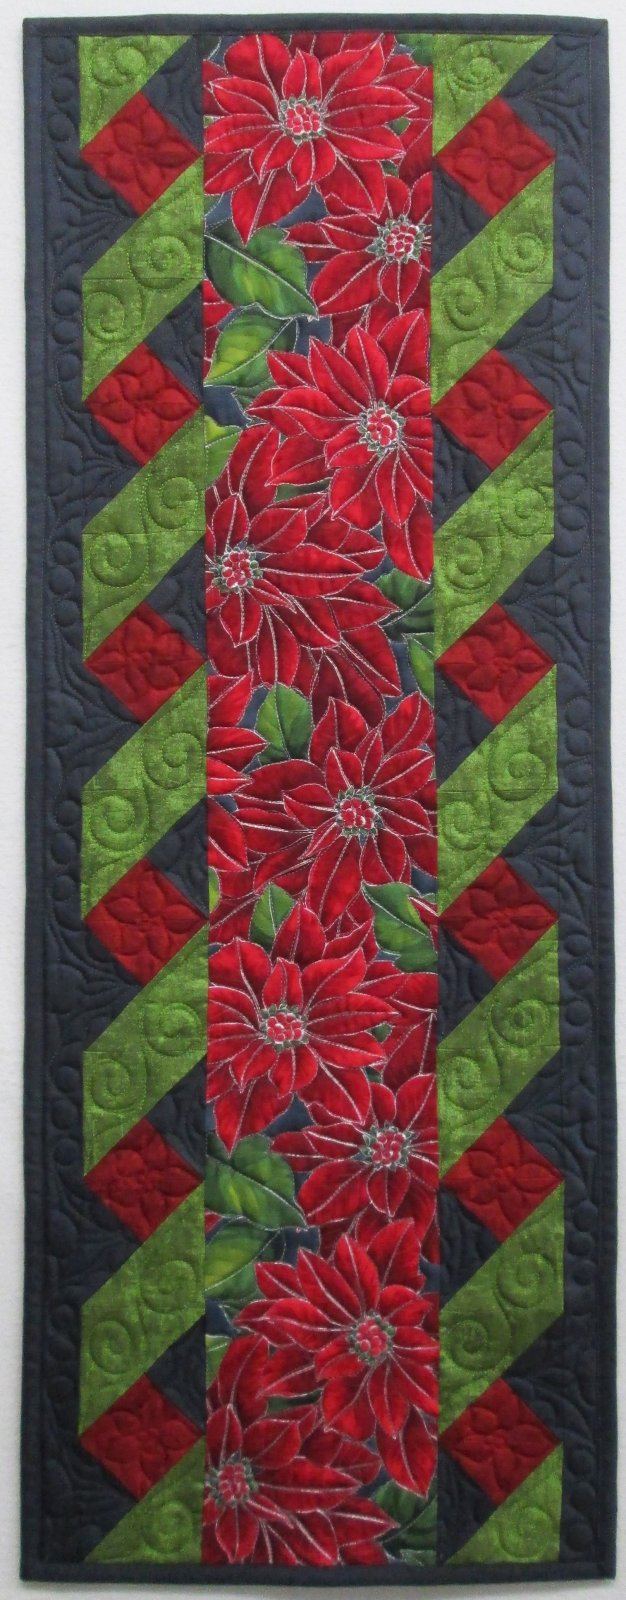 Poinsettia Song Twister Table Runner Finished Sample